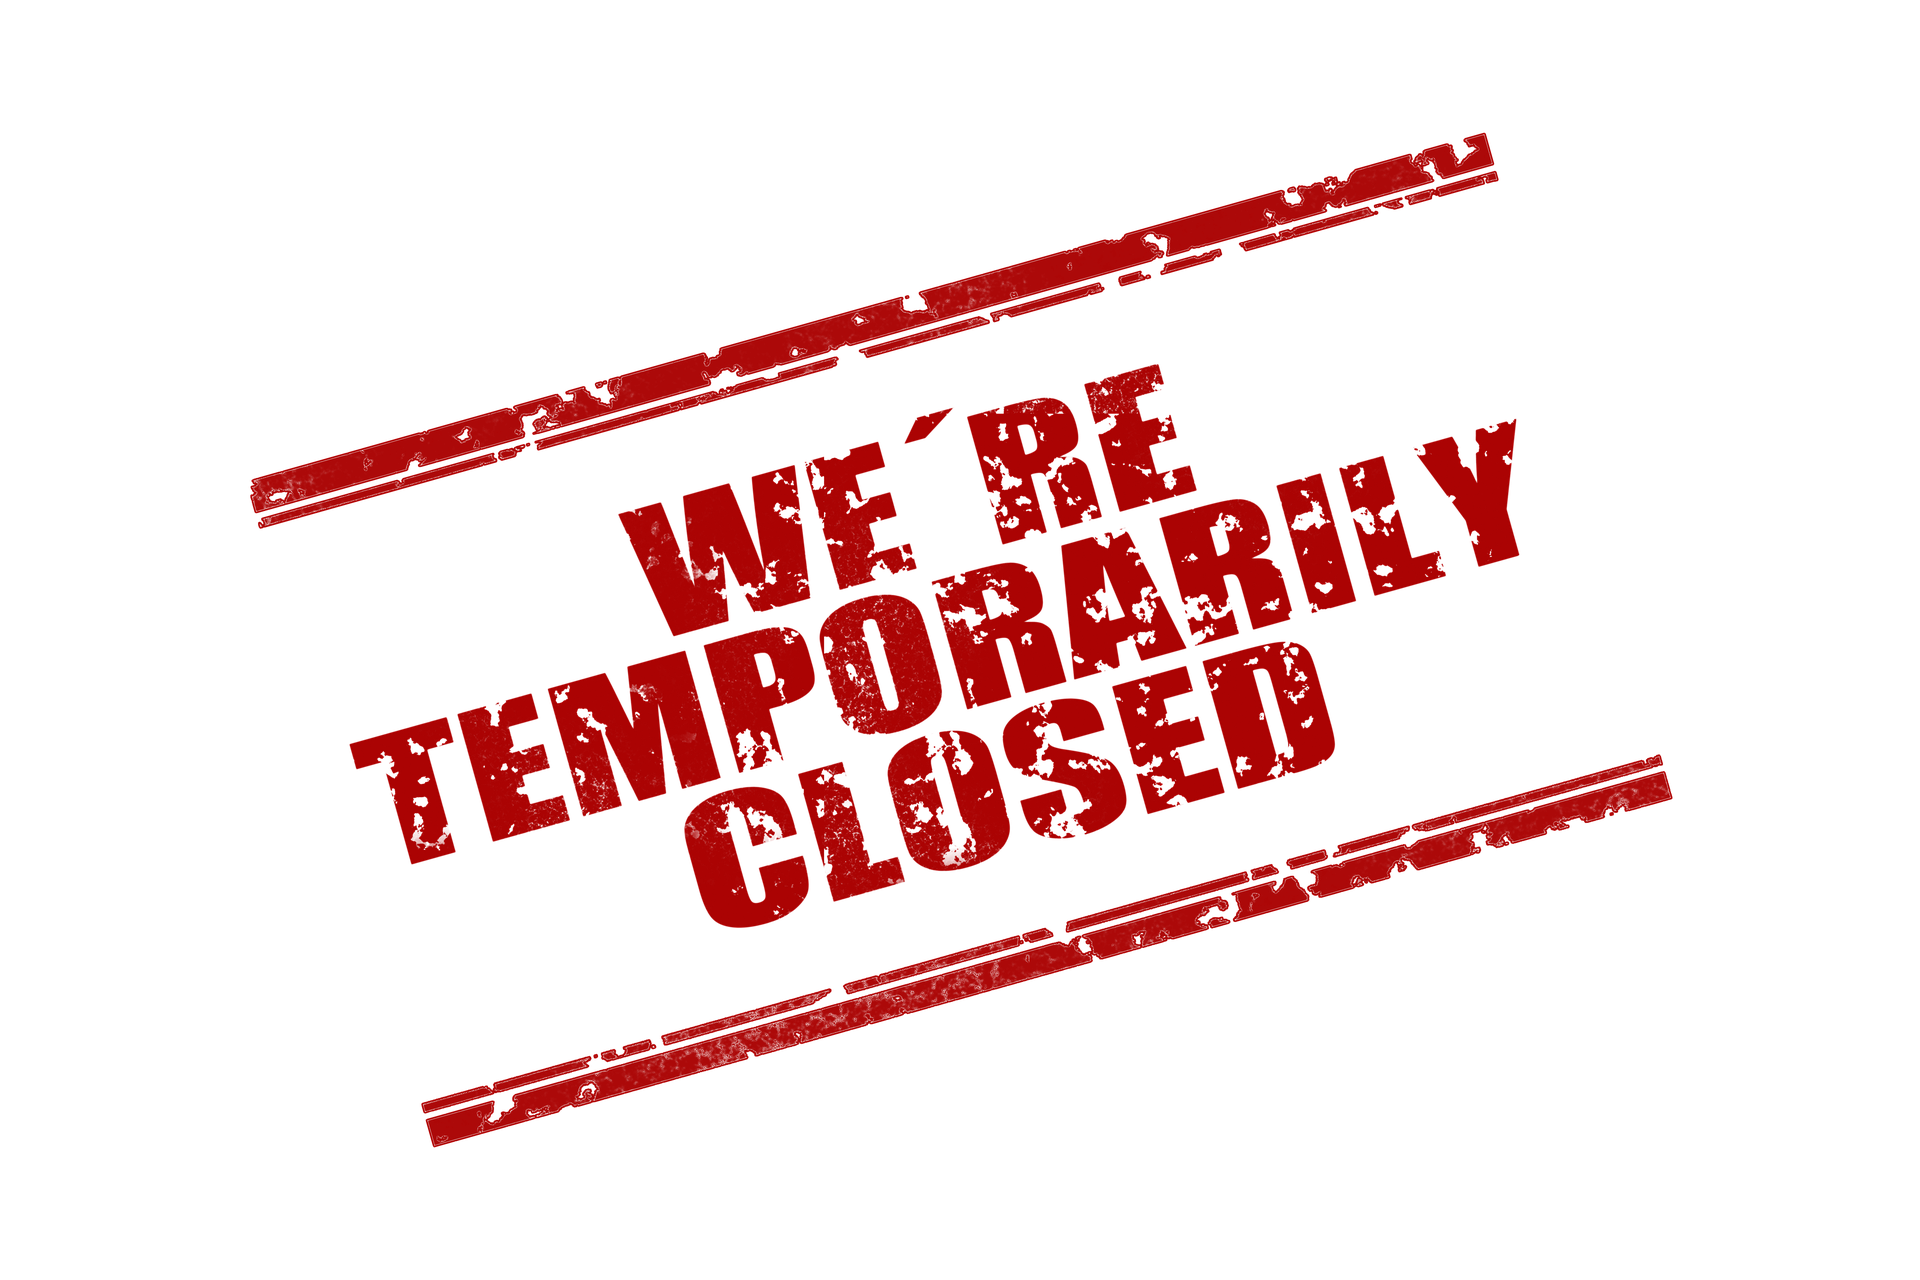 Stamp We are temprorarily closed. Image by Gerd Altmann from Pixabay